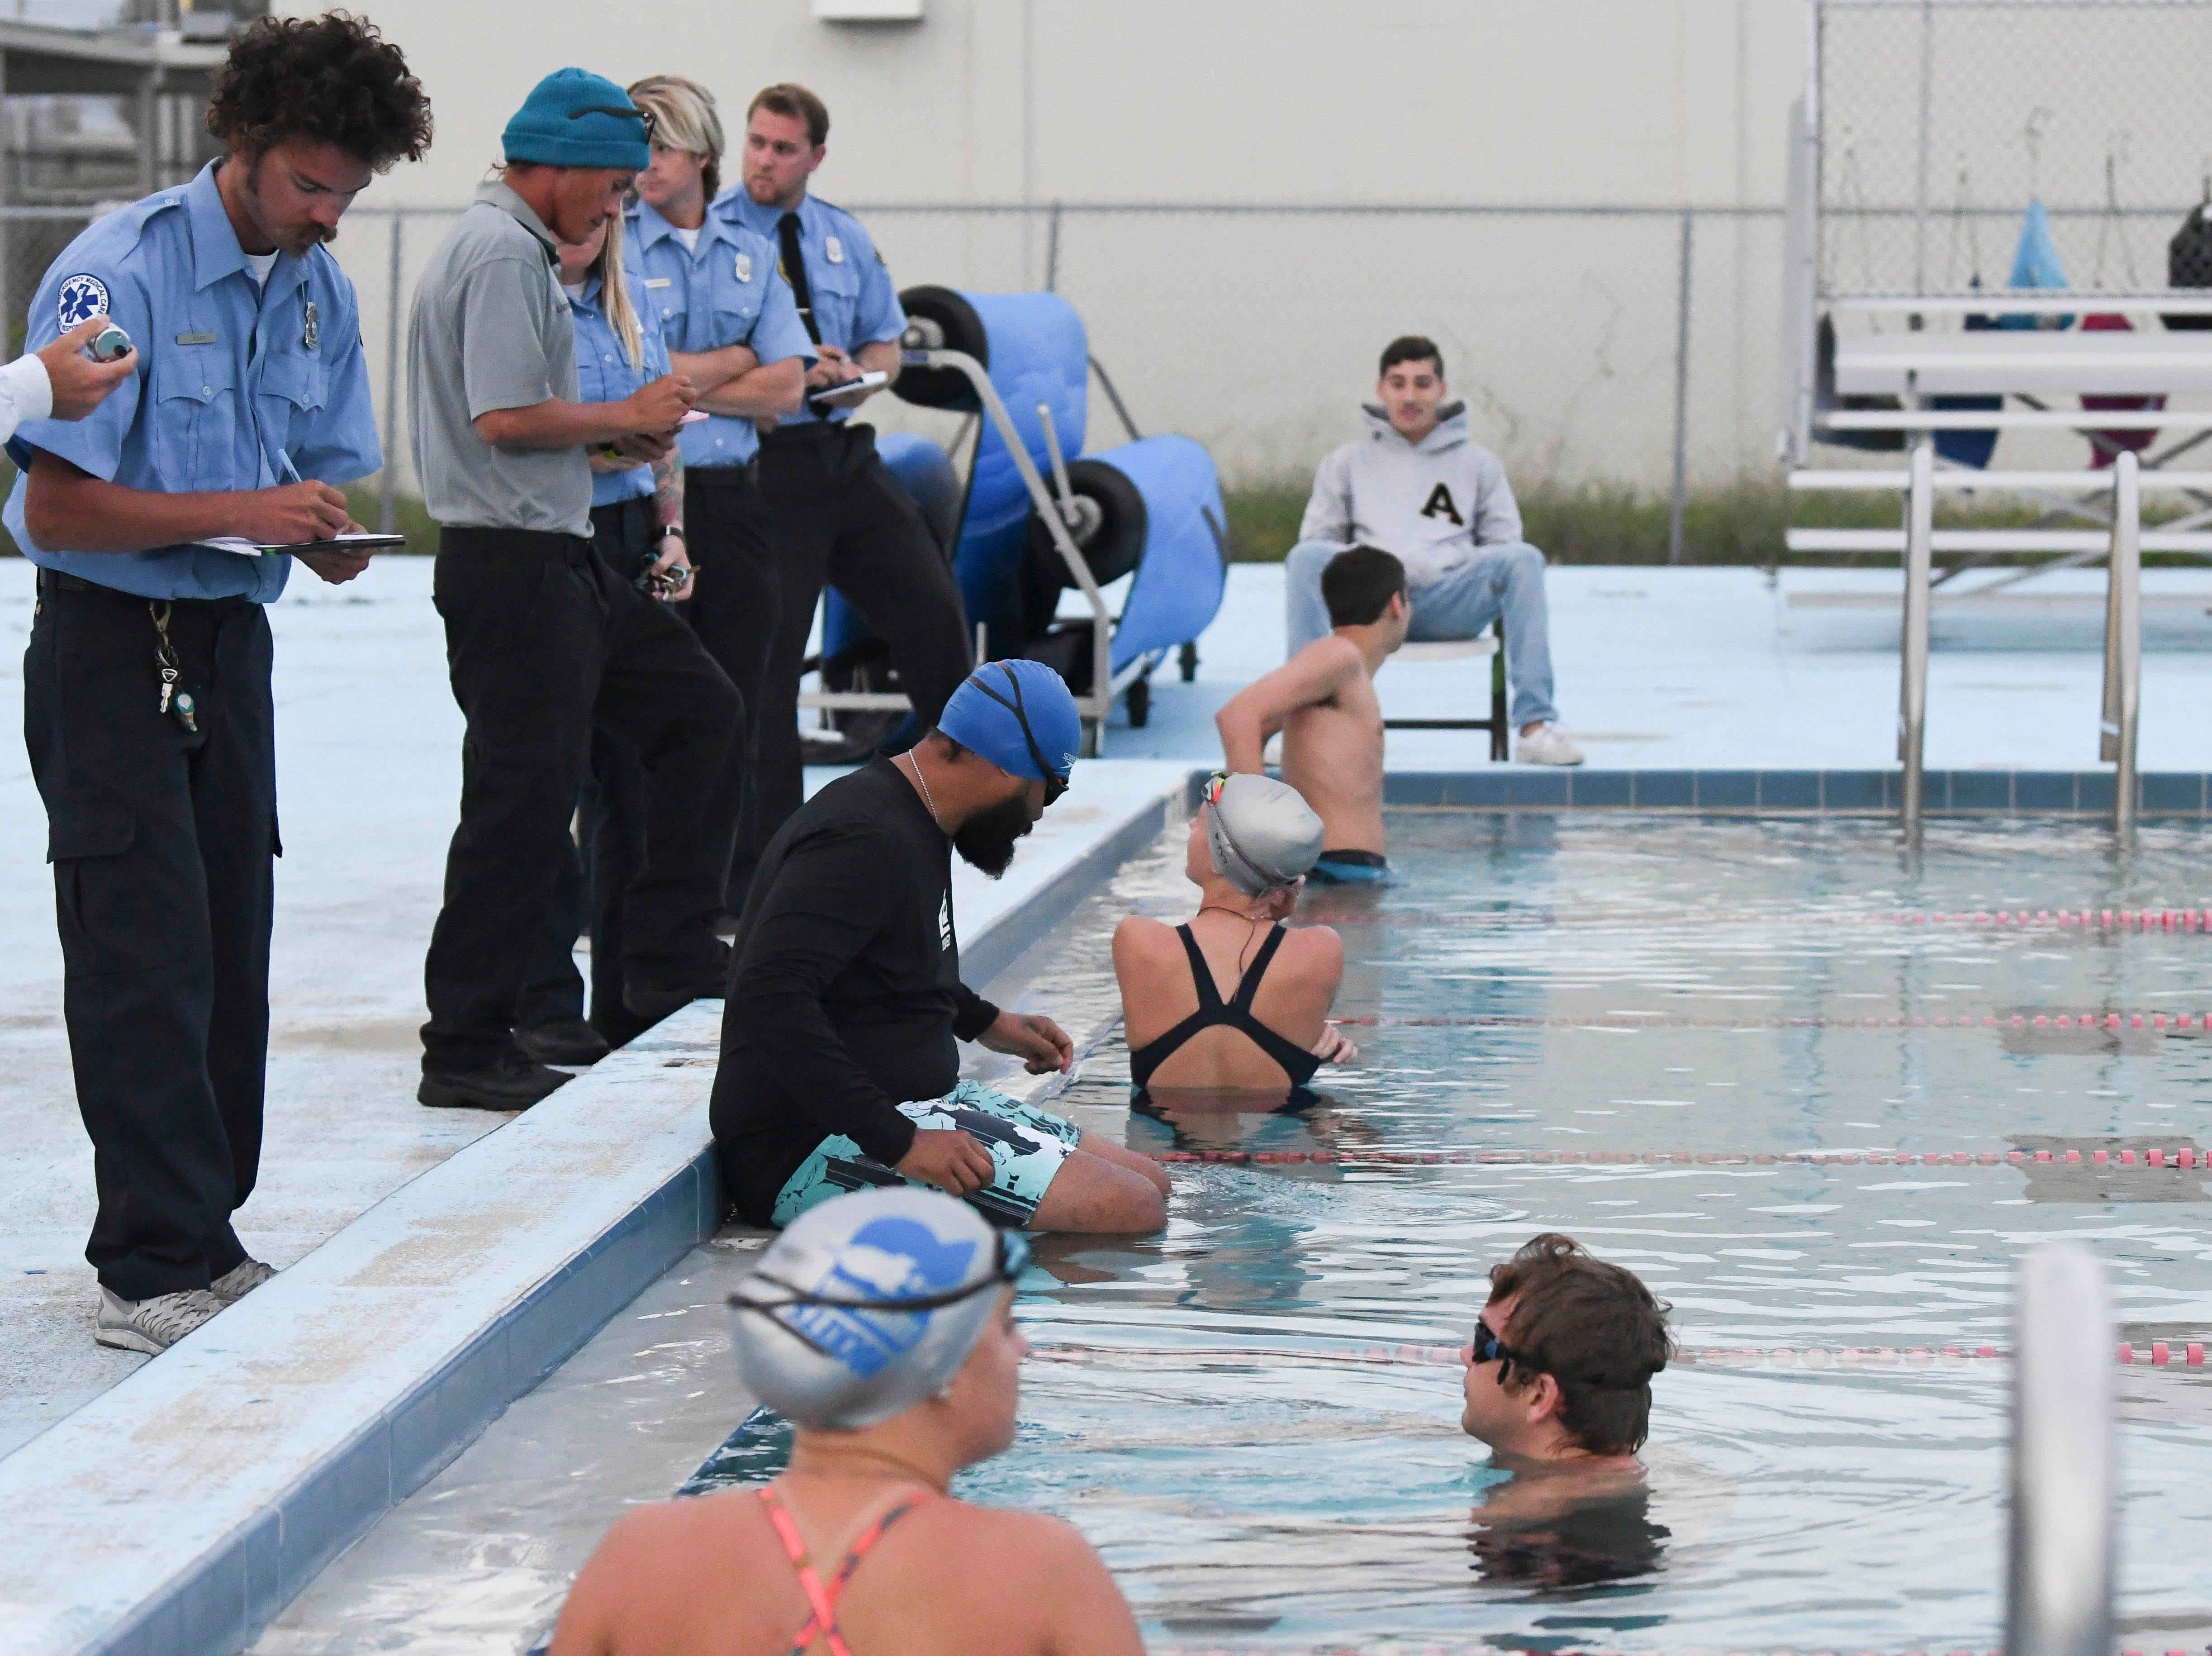 Applicants for ocean lifeguard positions with the county gather for their swim evaluation at Rockledge High School early Saturday morning.